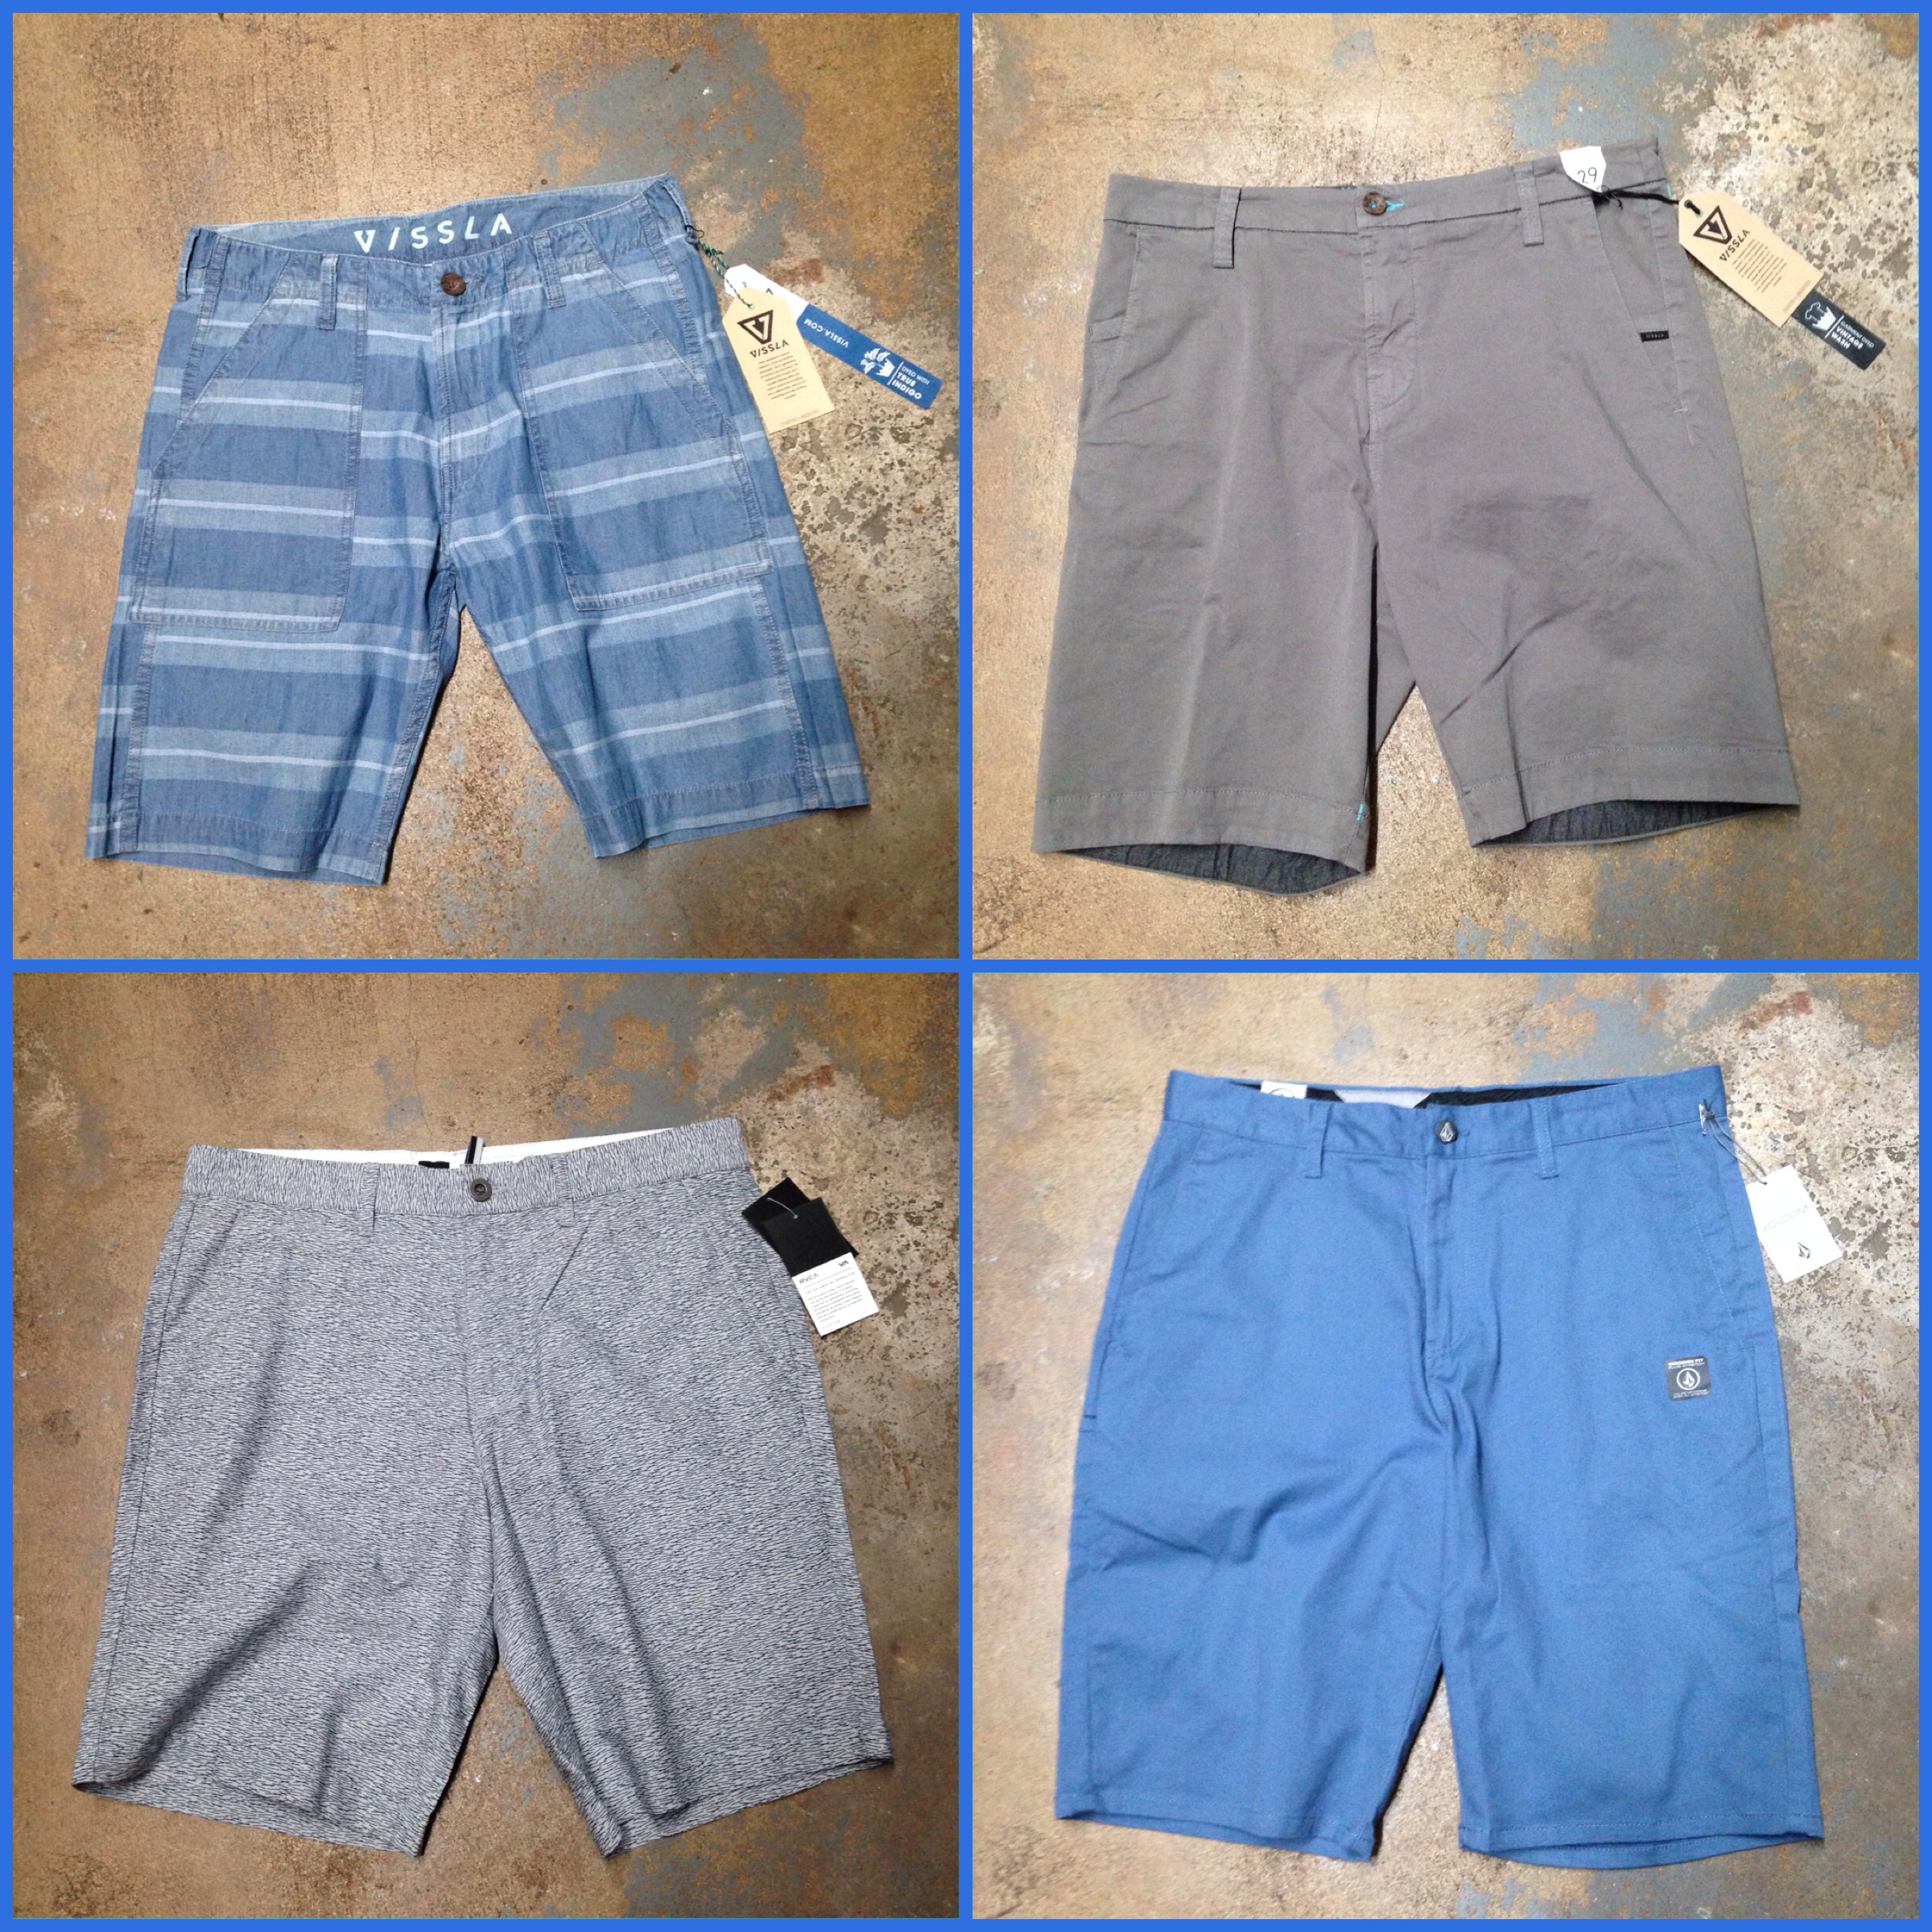 Shorts from Vissla, RVCA, and Volcom!